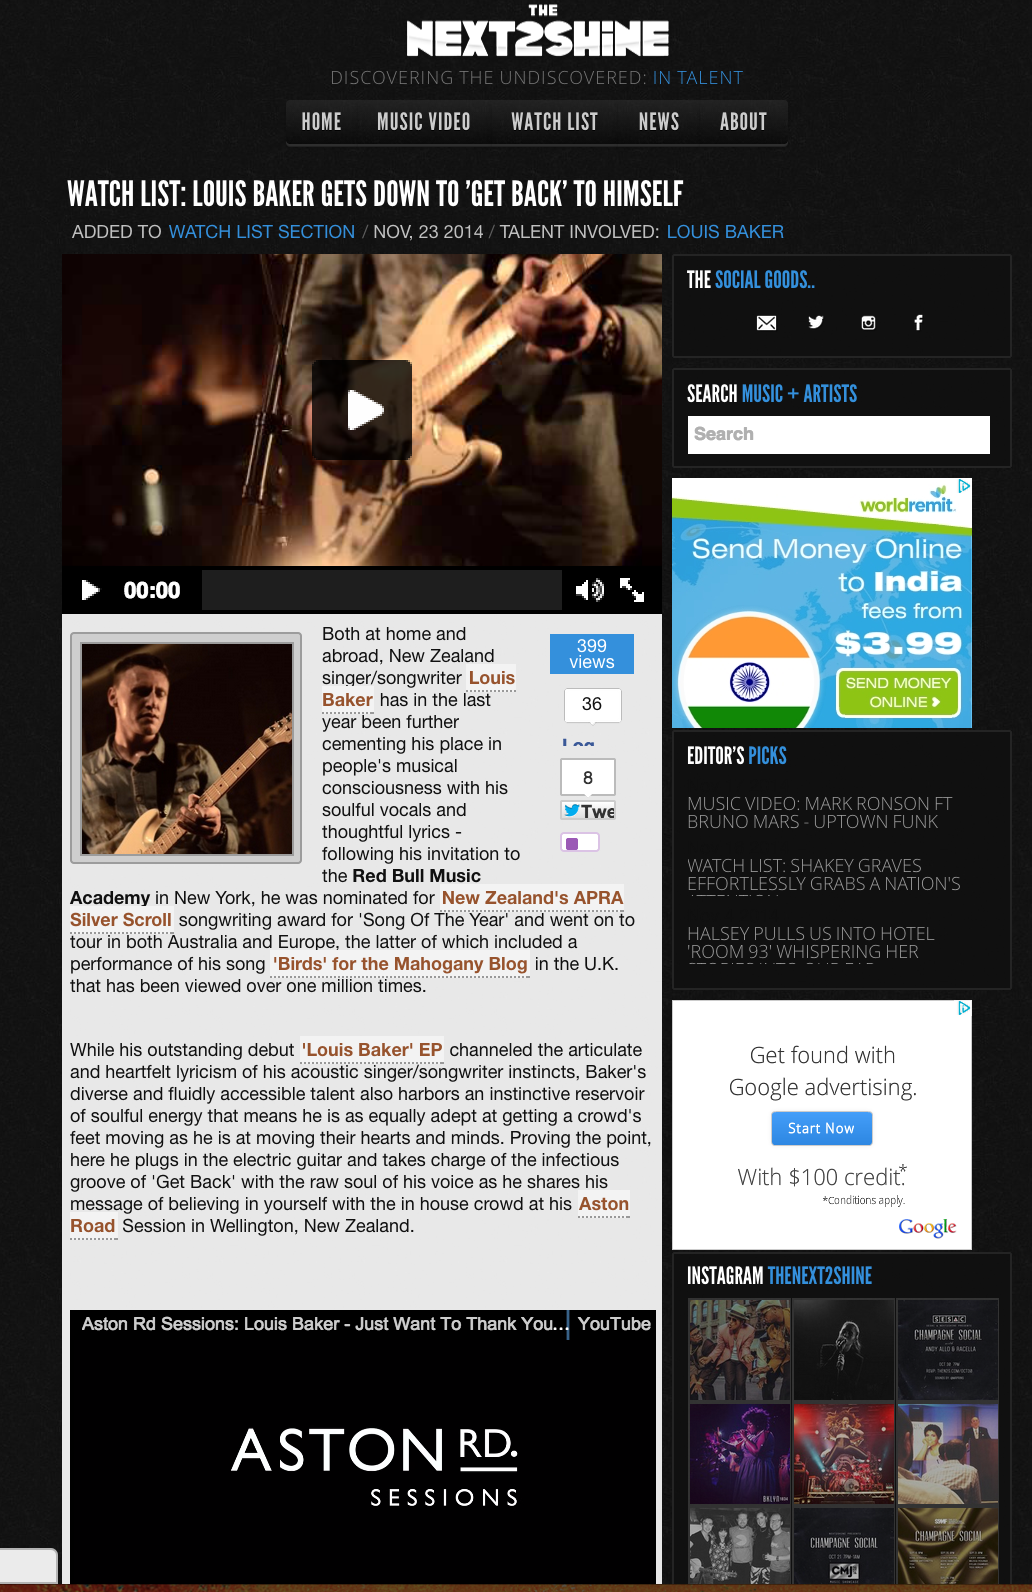 """Our video of Louis Baker's Aston Rd Sessions (live) """"Get Back"""" featured on TheNext2Shine.com's  Watch List."""